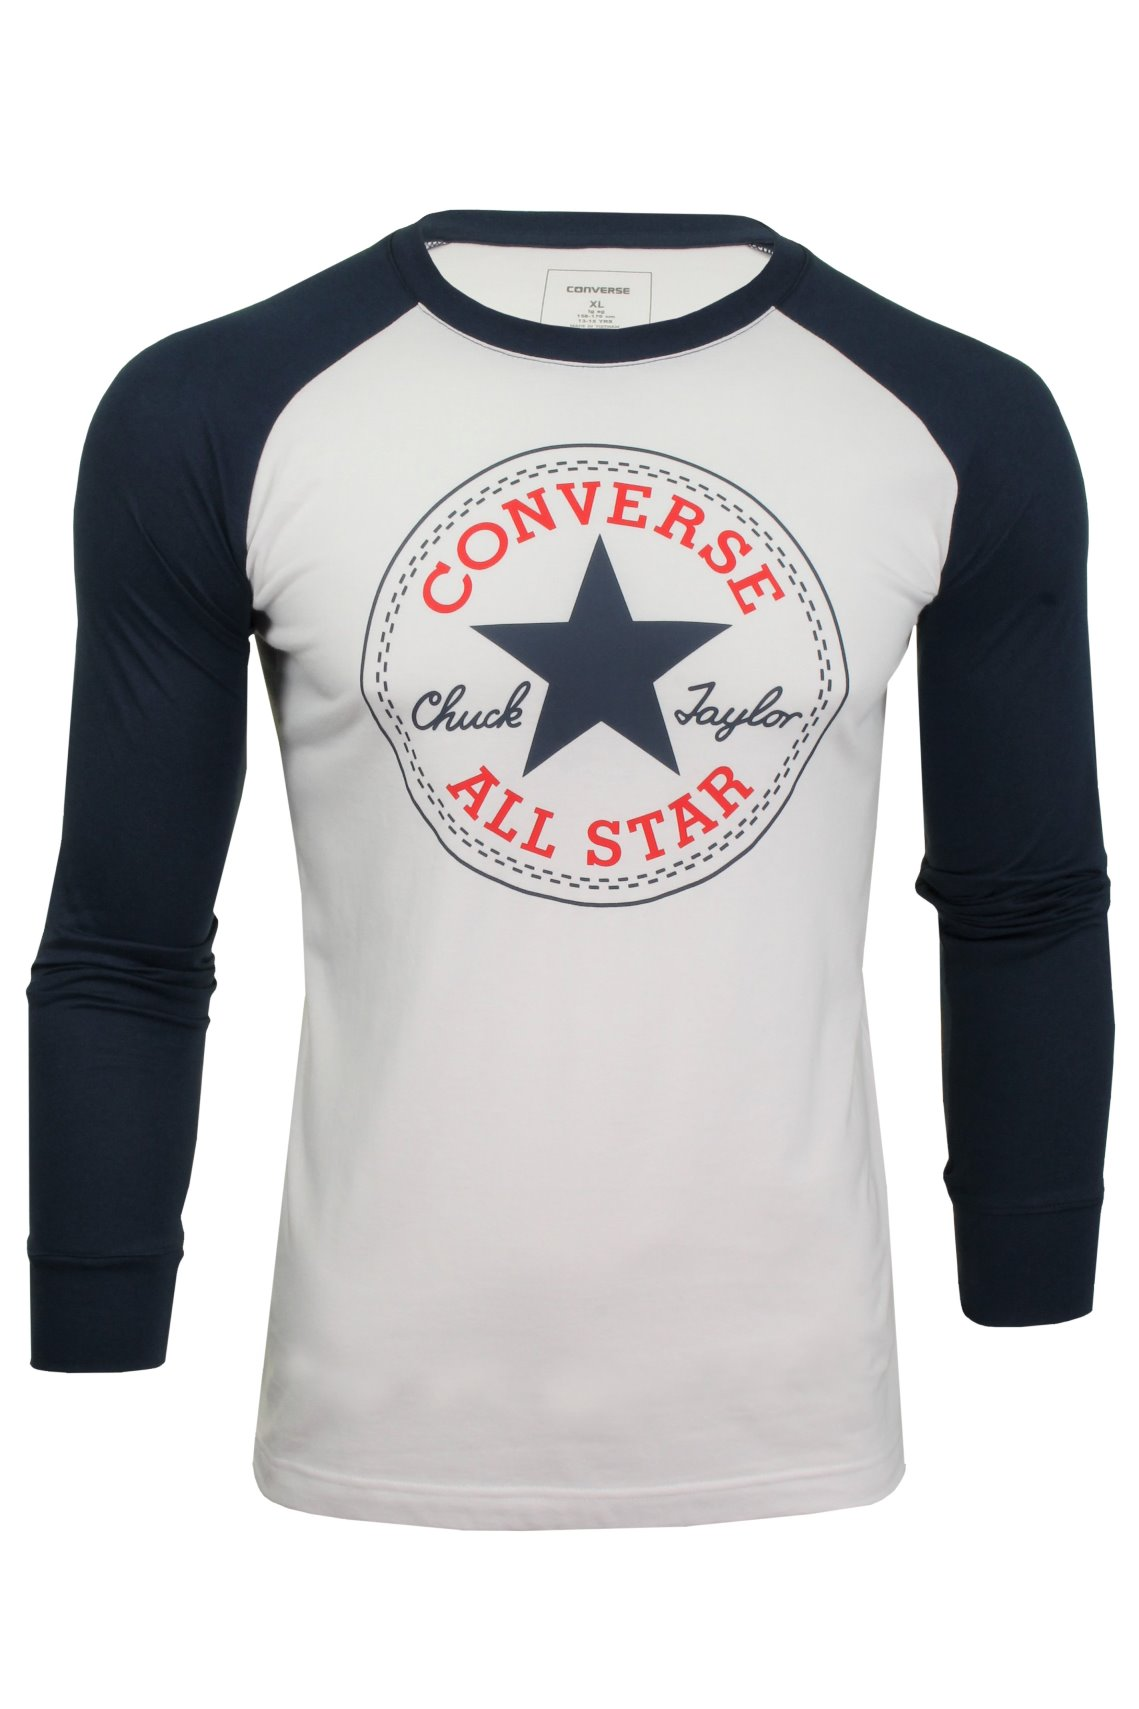 converse long sleeve shirt